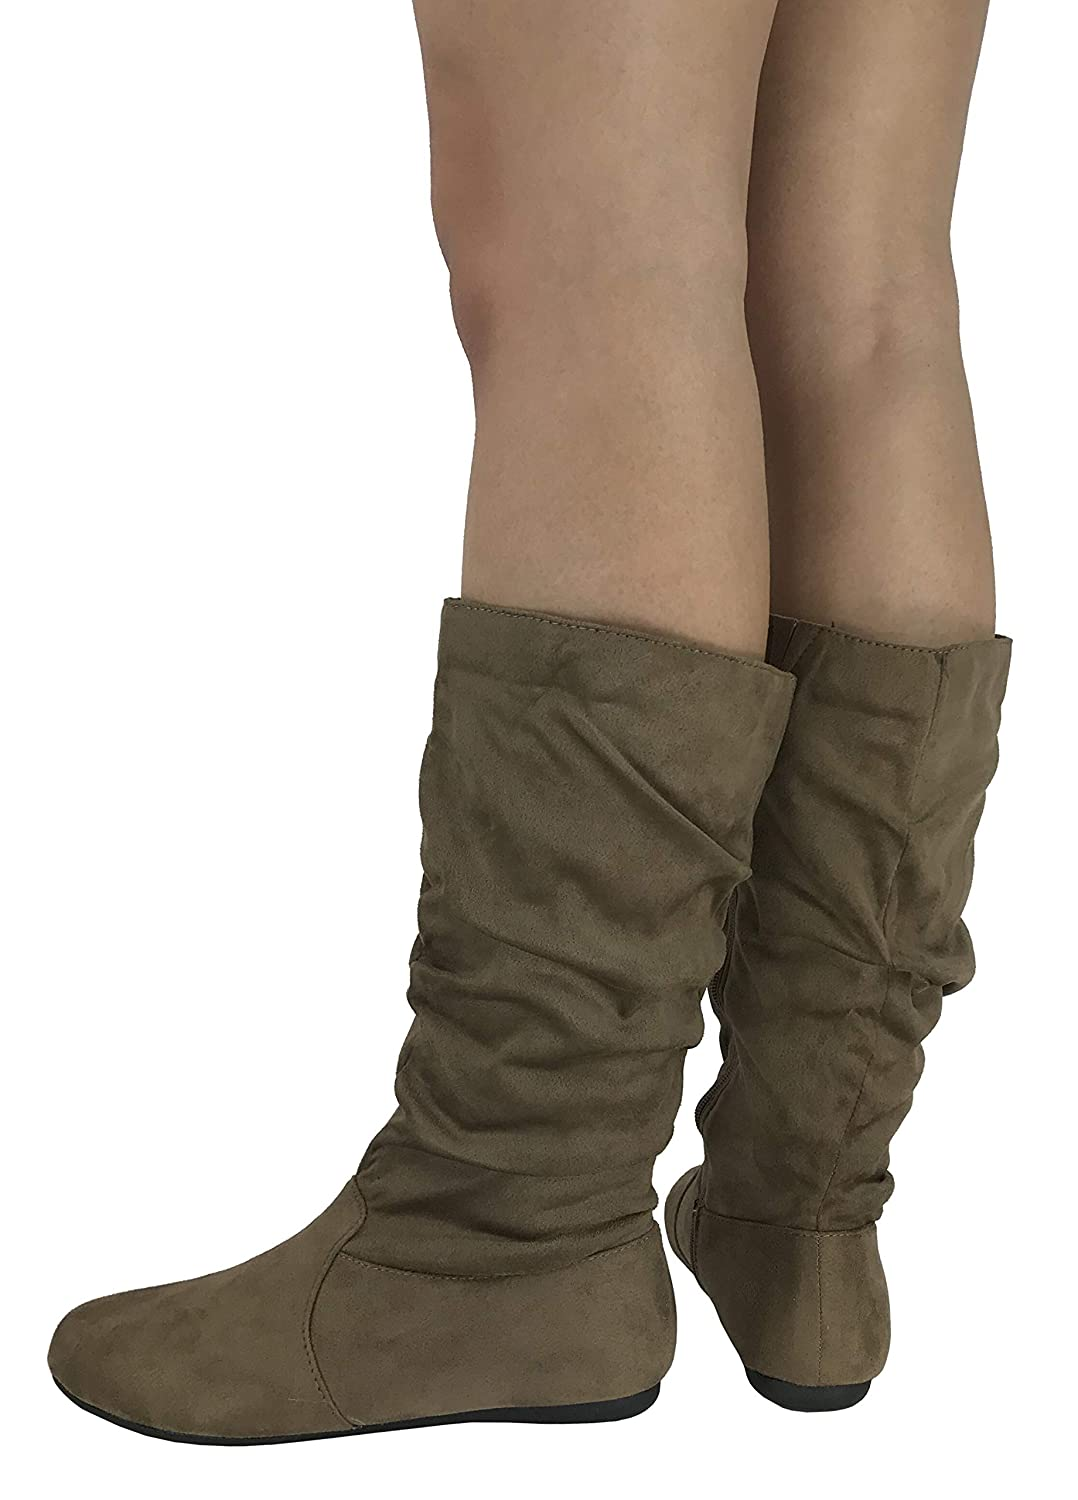 Wells Collection Womens /& Girls Slouchy Wonda Boots Soft Flat to Low Heel Under Knee High